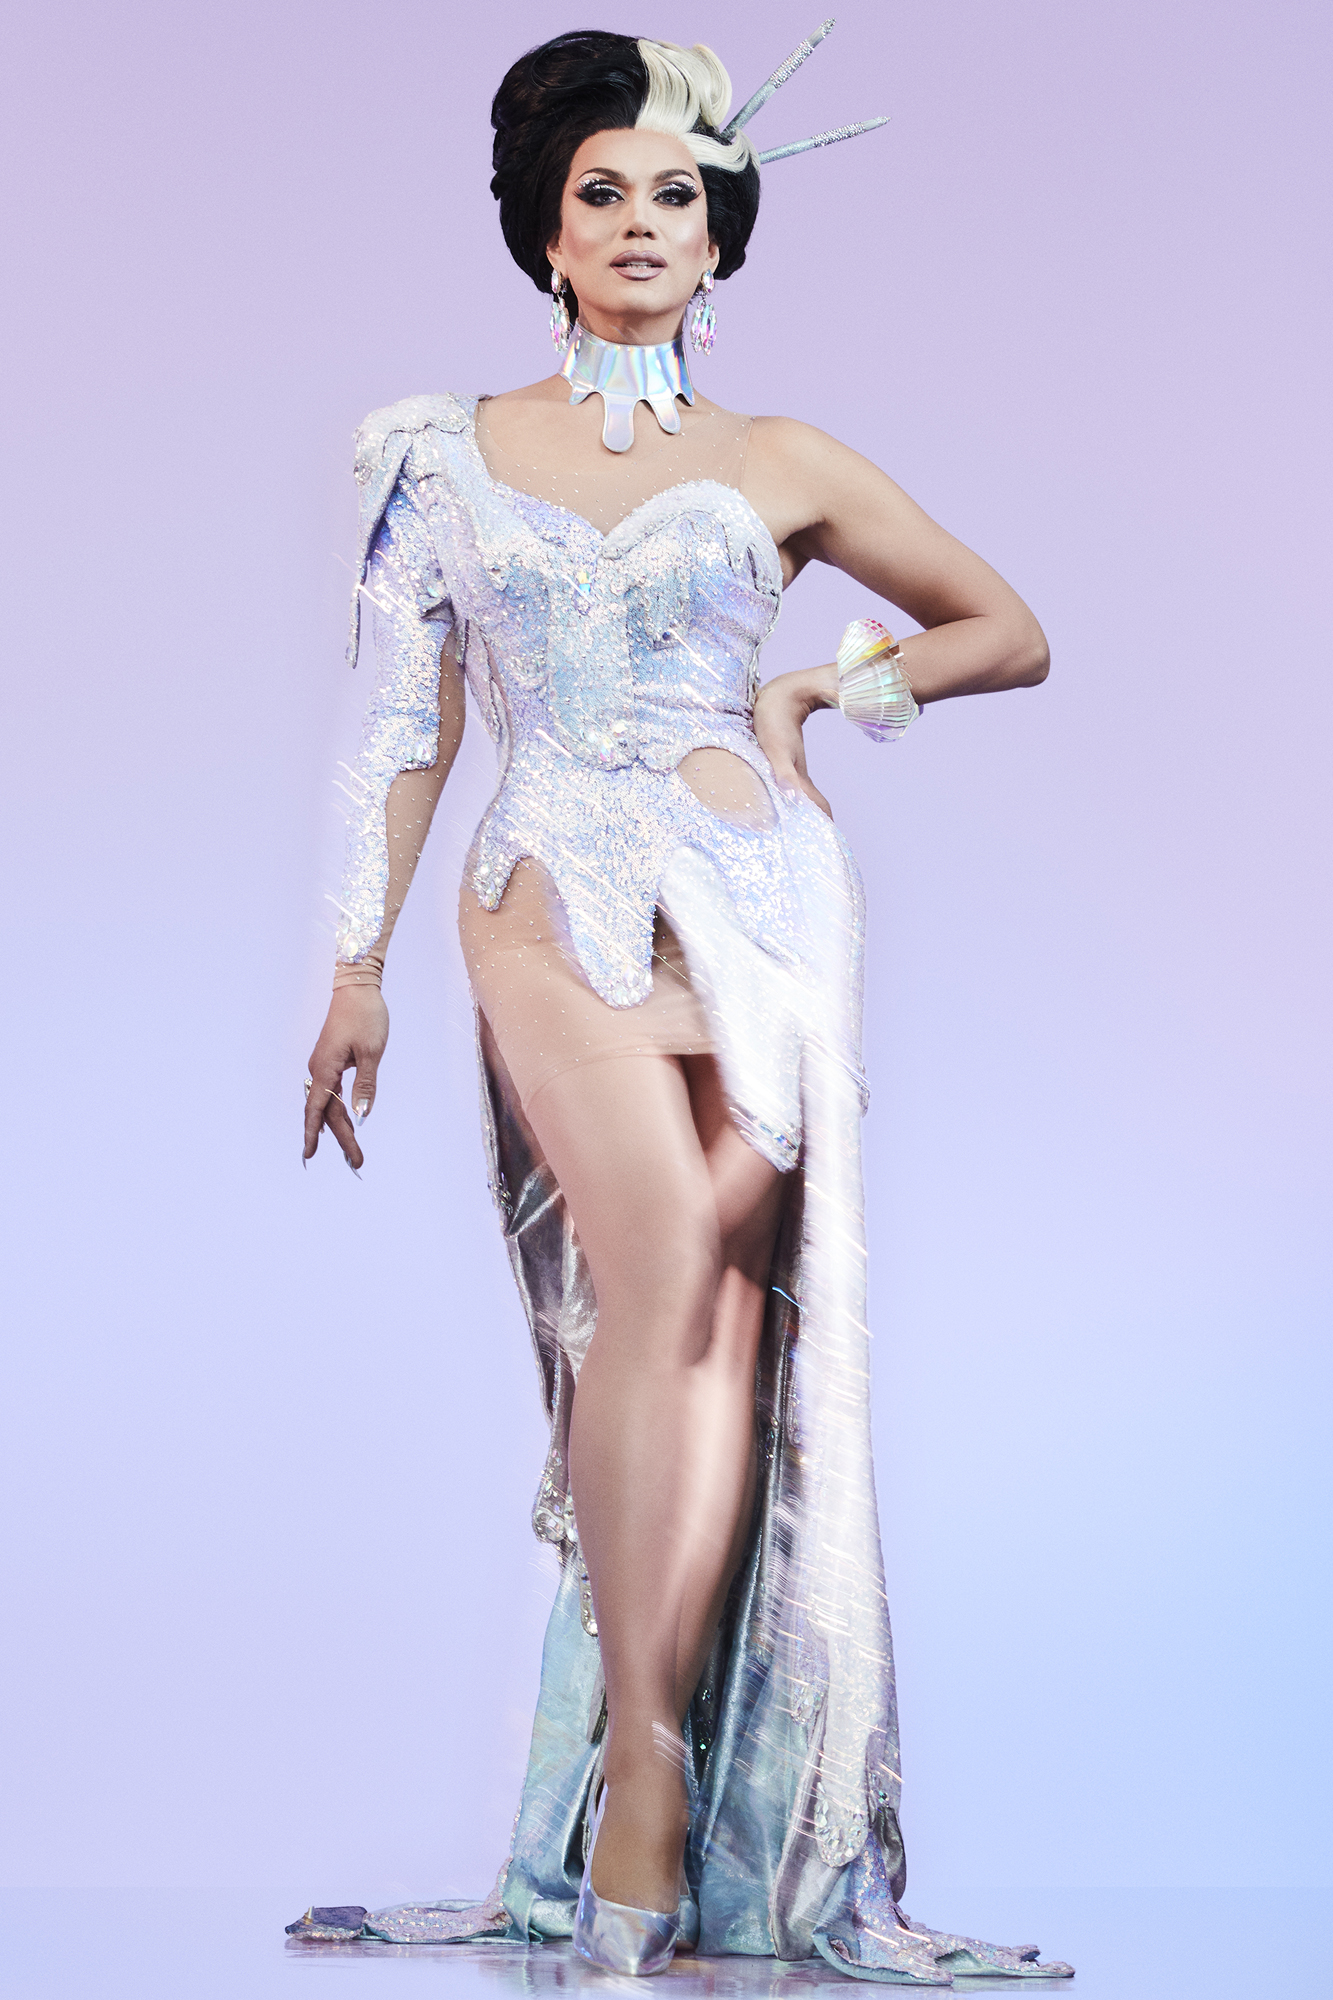 ELIMINATED IN 6TH PLACE: Manila Luzon